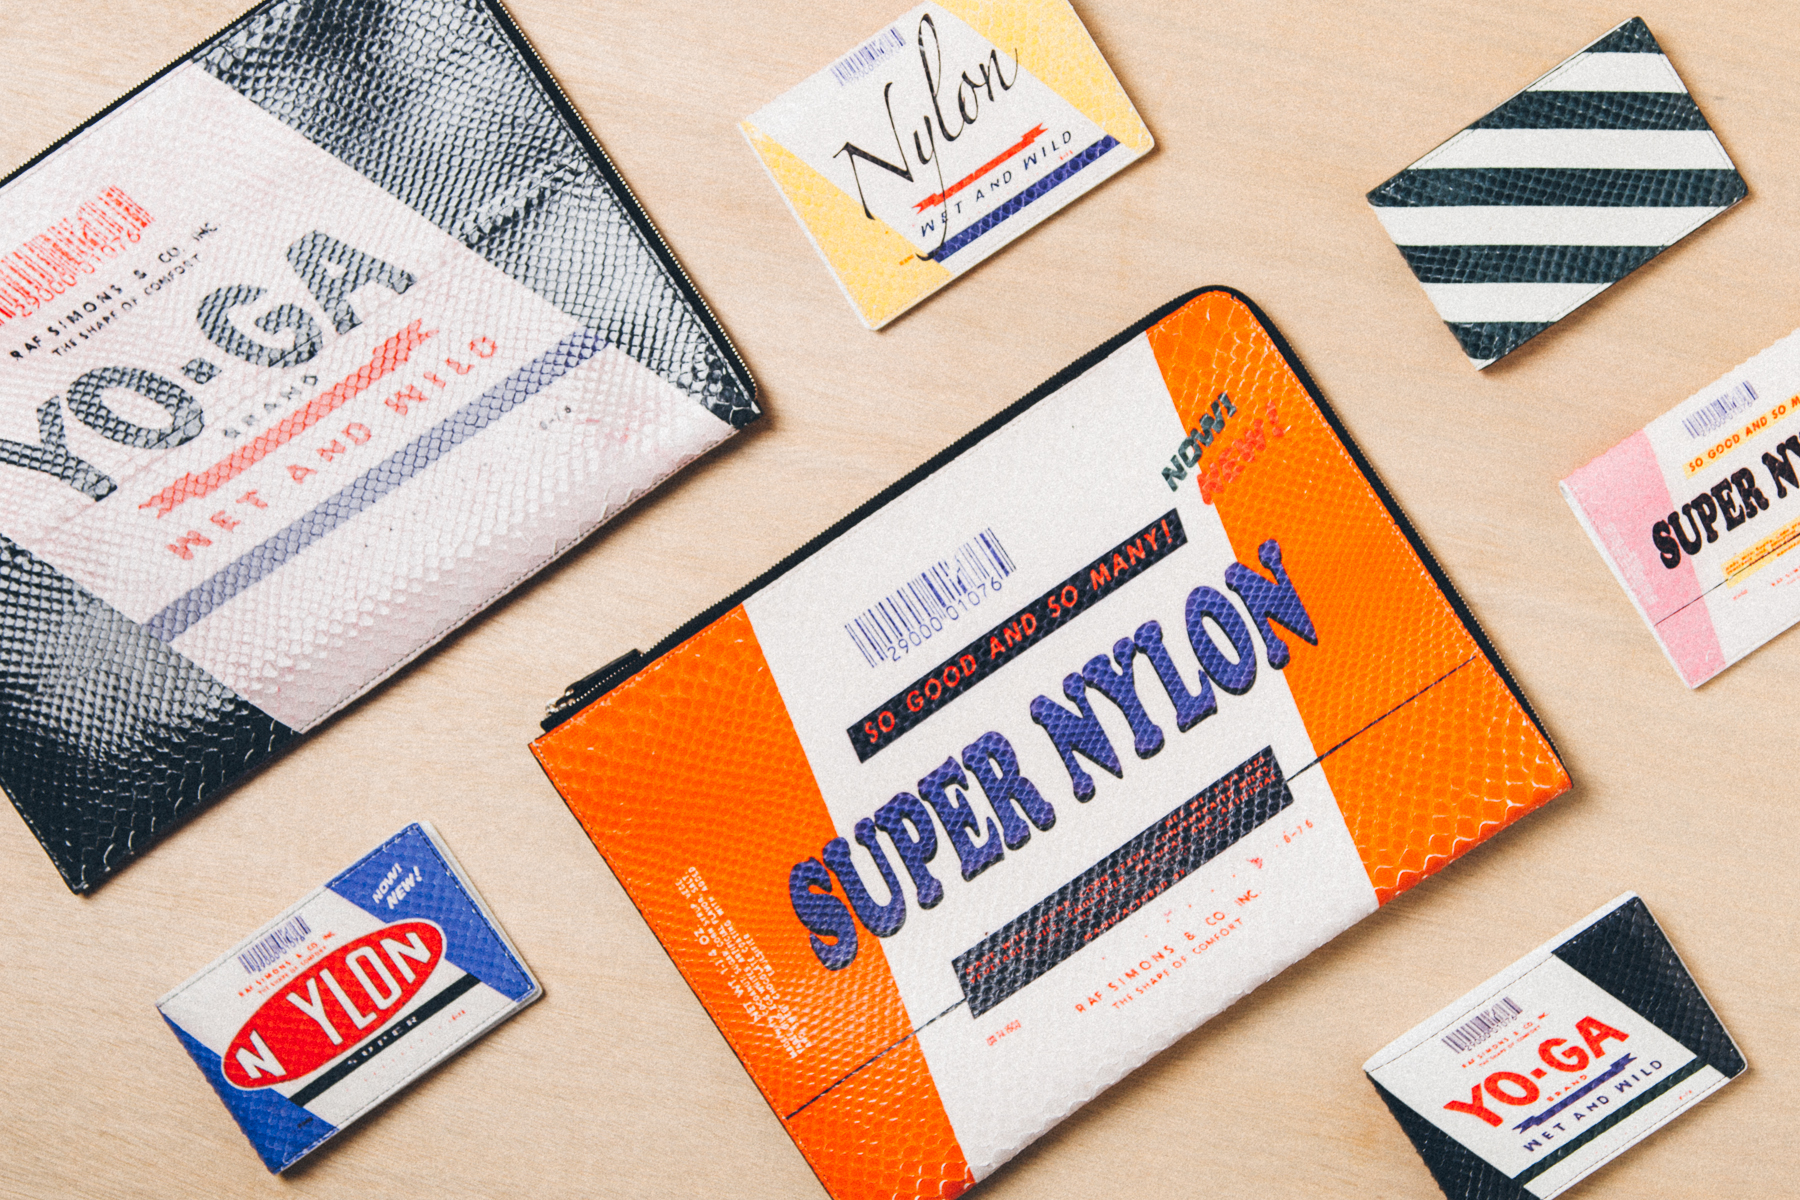 Raf Simons 2014 Spring/Summer Leather Goods Collection